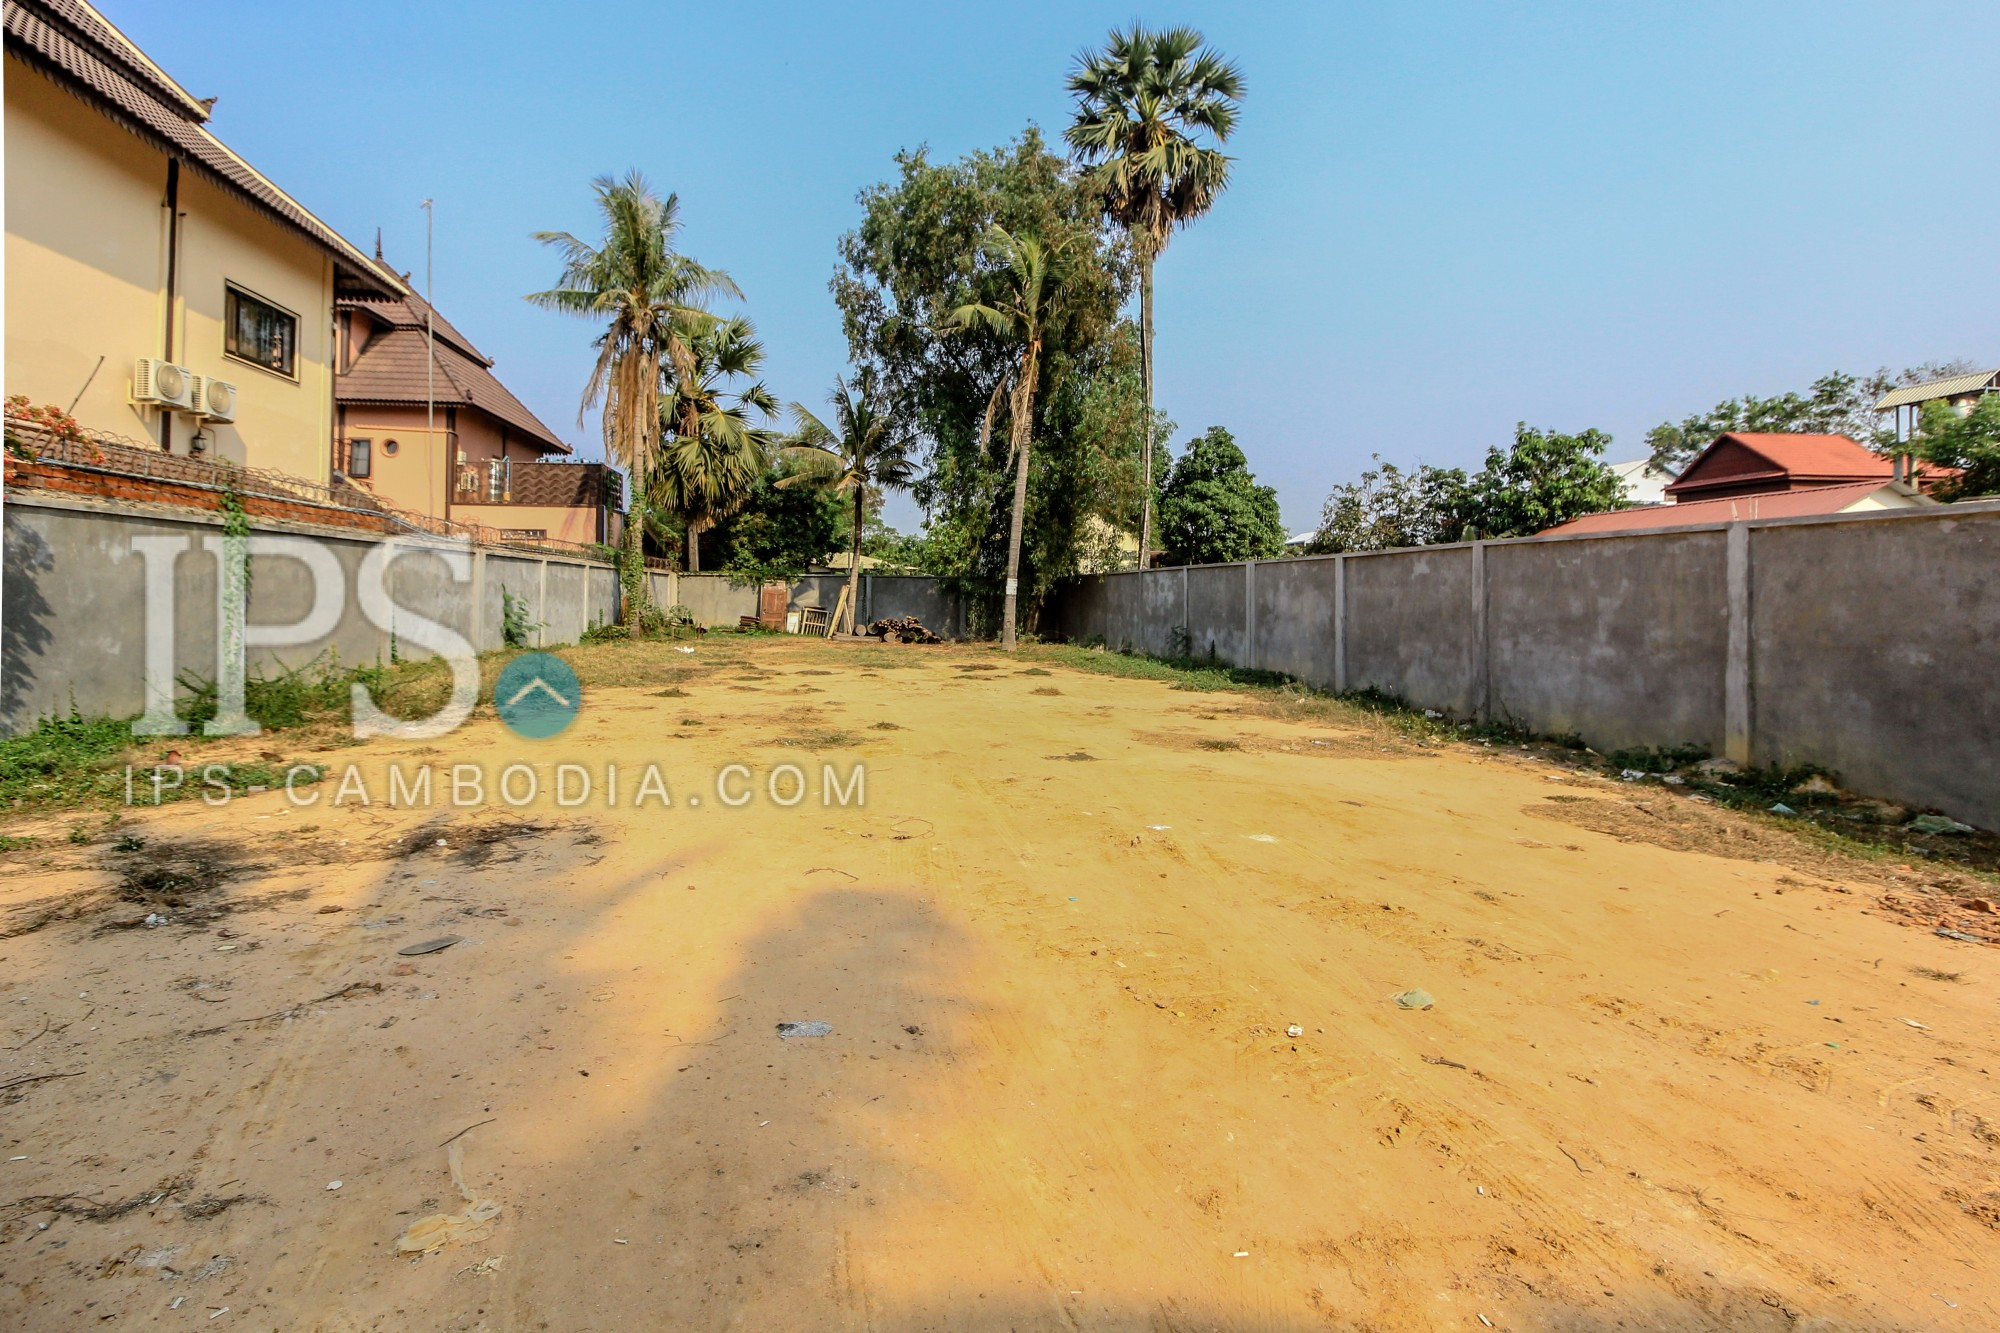 Residential Land with Hard Title For Sale - Svay Dangkum